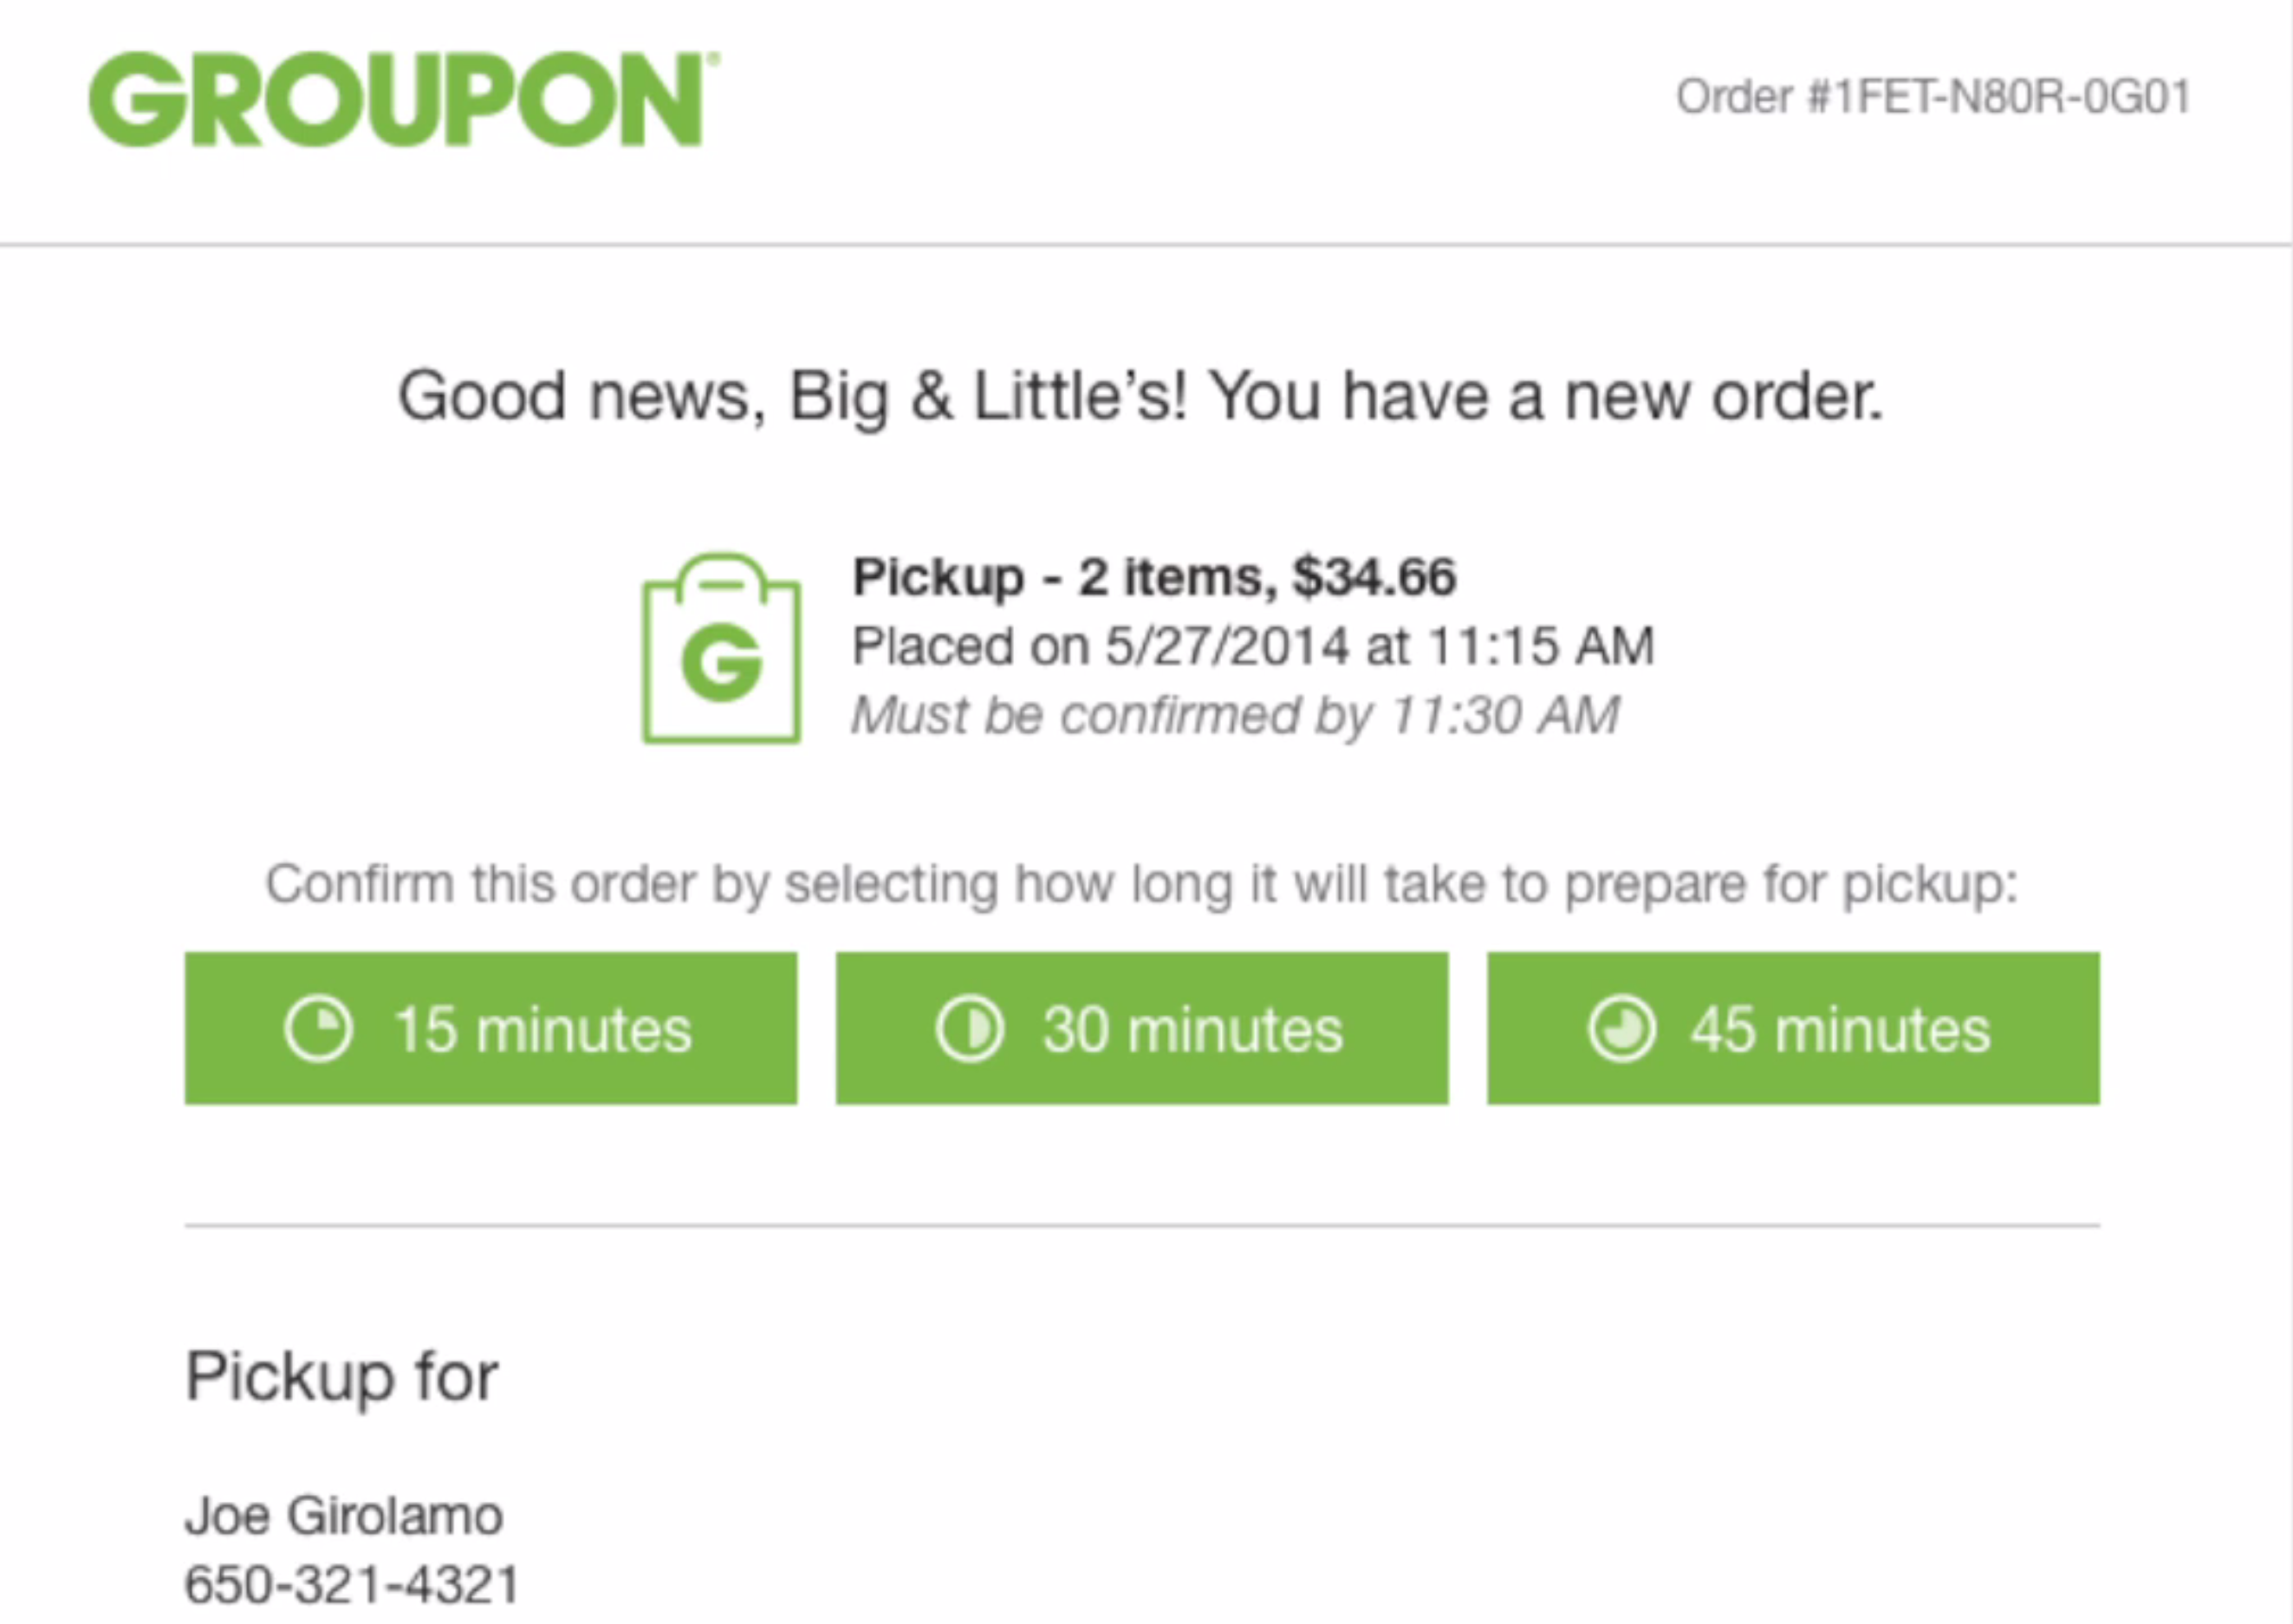 Groupon orders